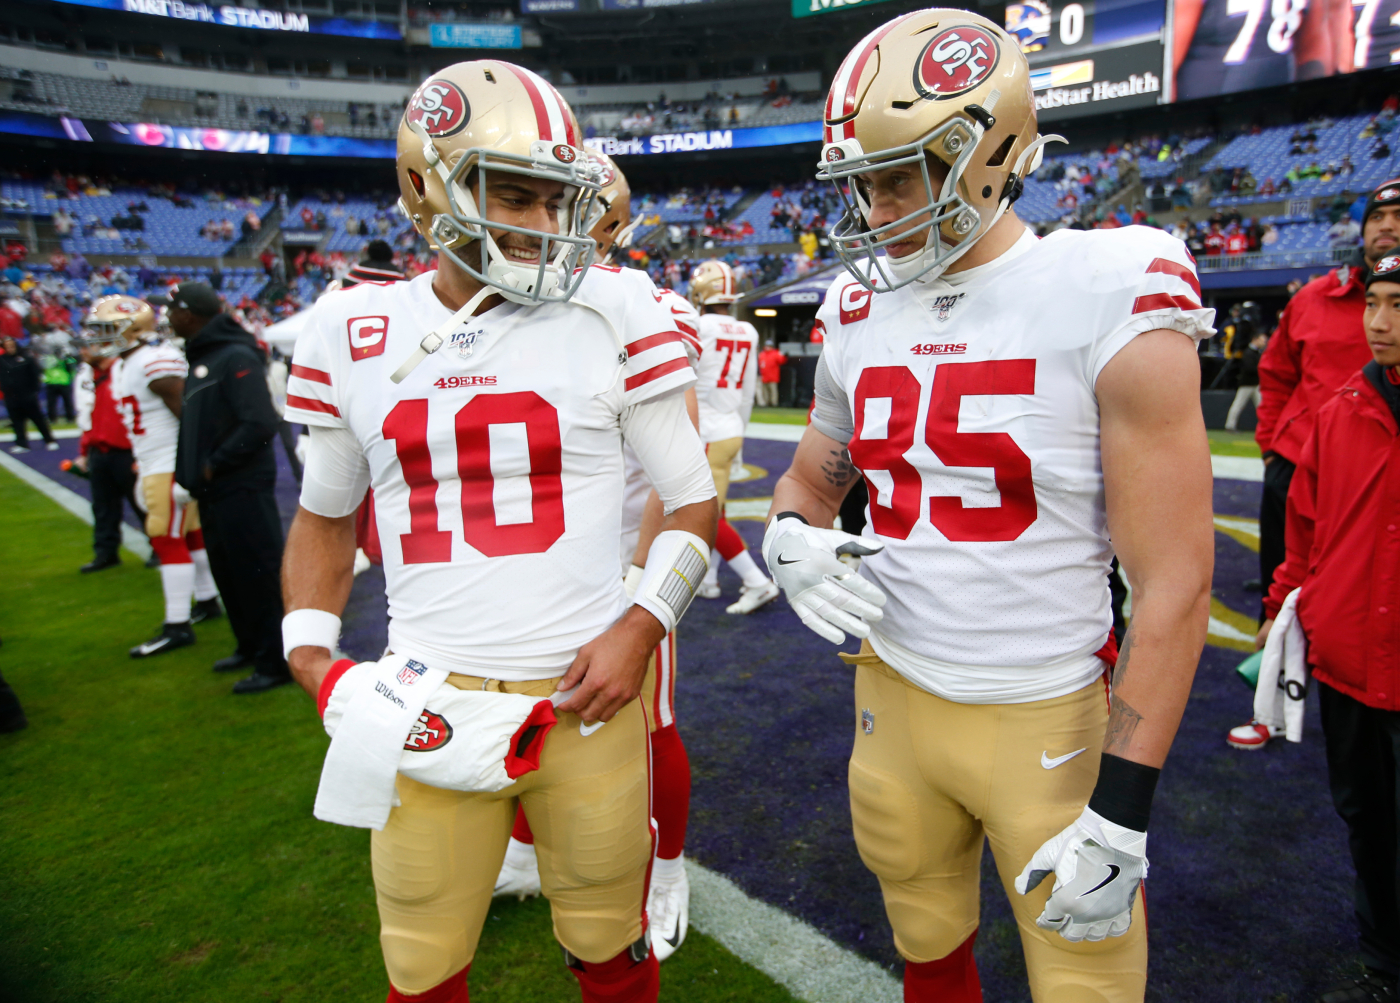 Jimmy Garoppolo has had a roller-coaster career with the San Francisco 49ers. George Kittle now has a stern message about his quarterback.